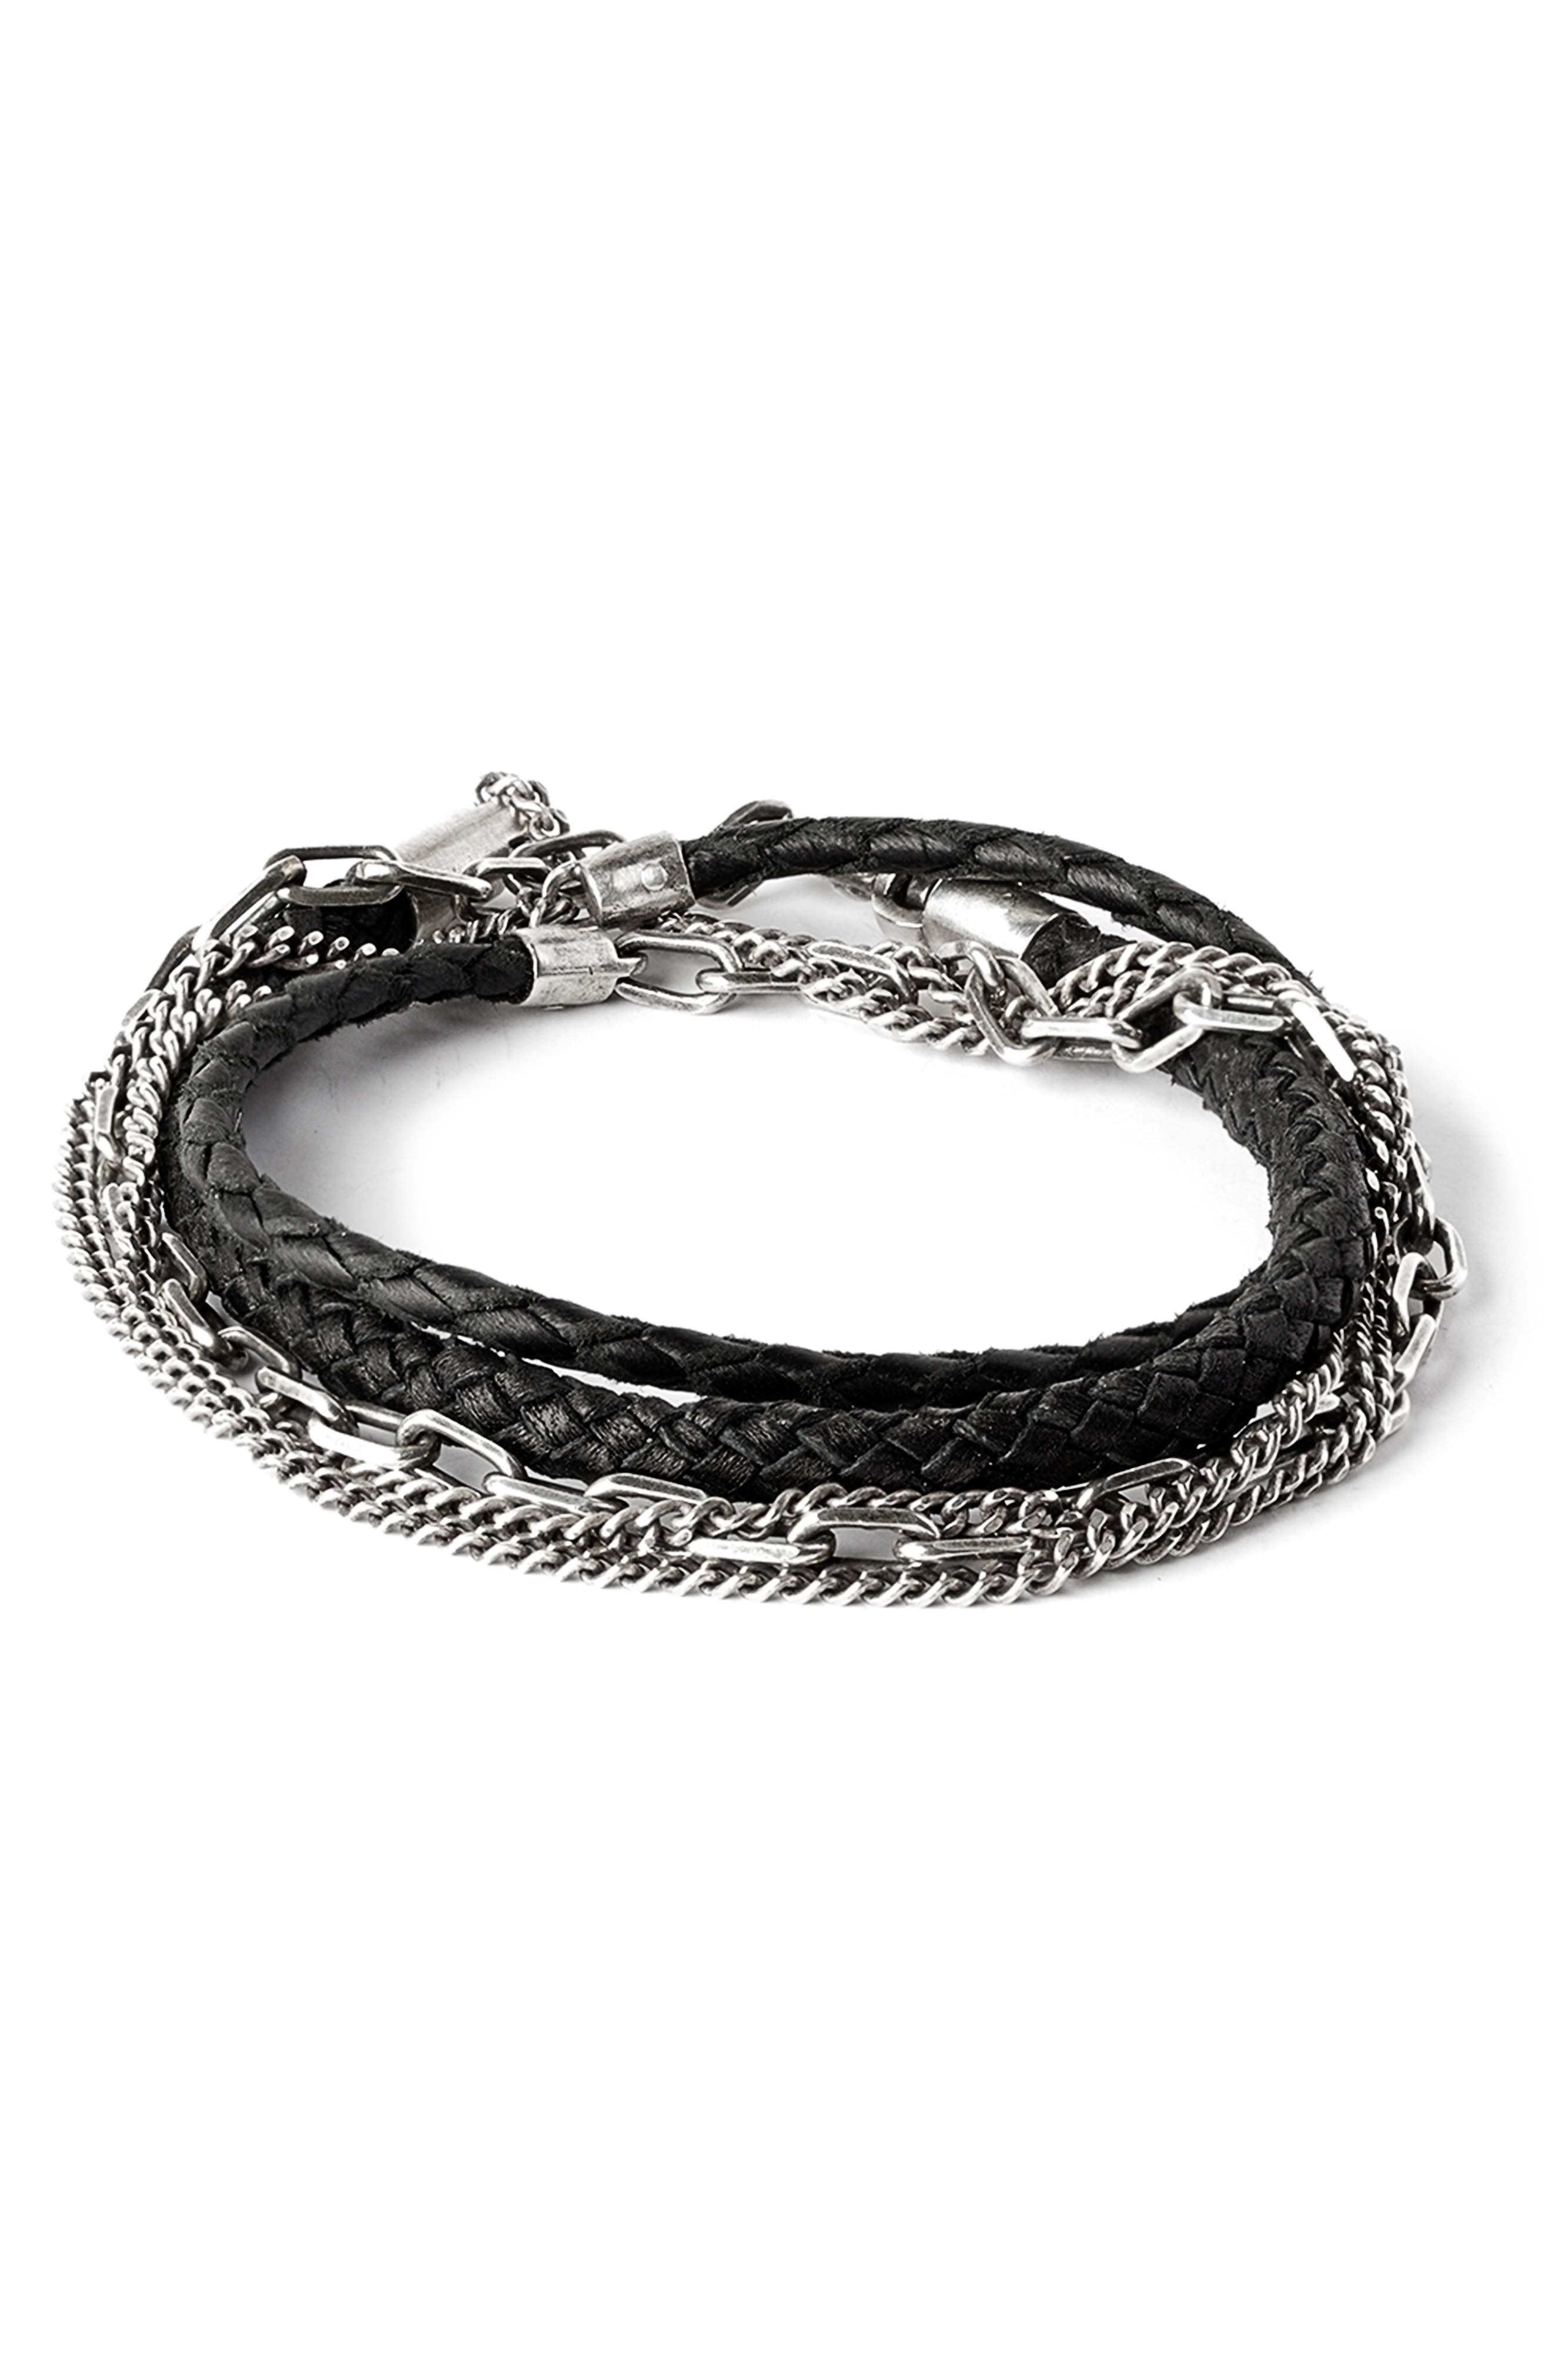 Braided Leather & Chain Multi Wrap Bracelet,                             Main thumbnail 1, color,                             Black/Silver